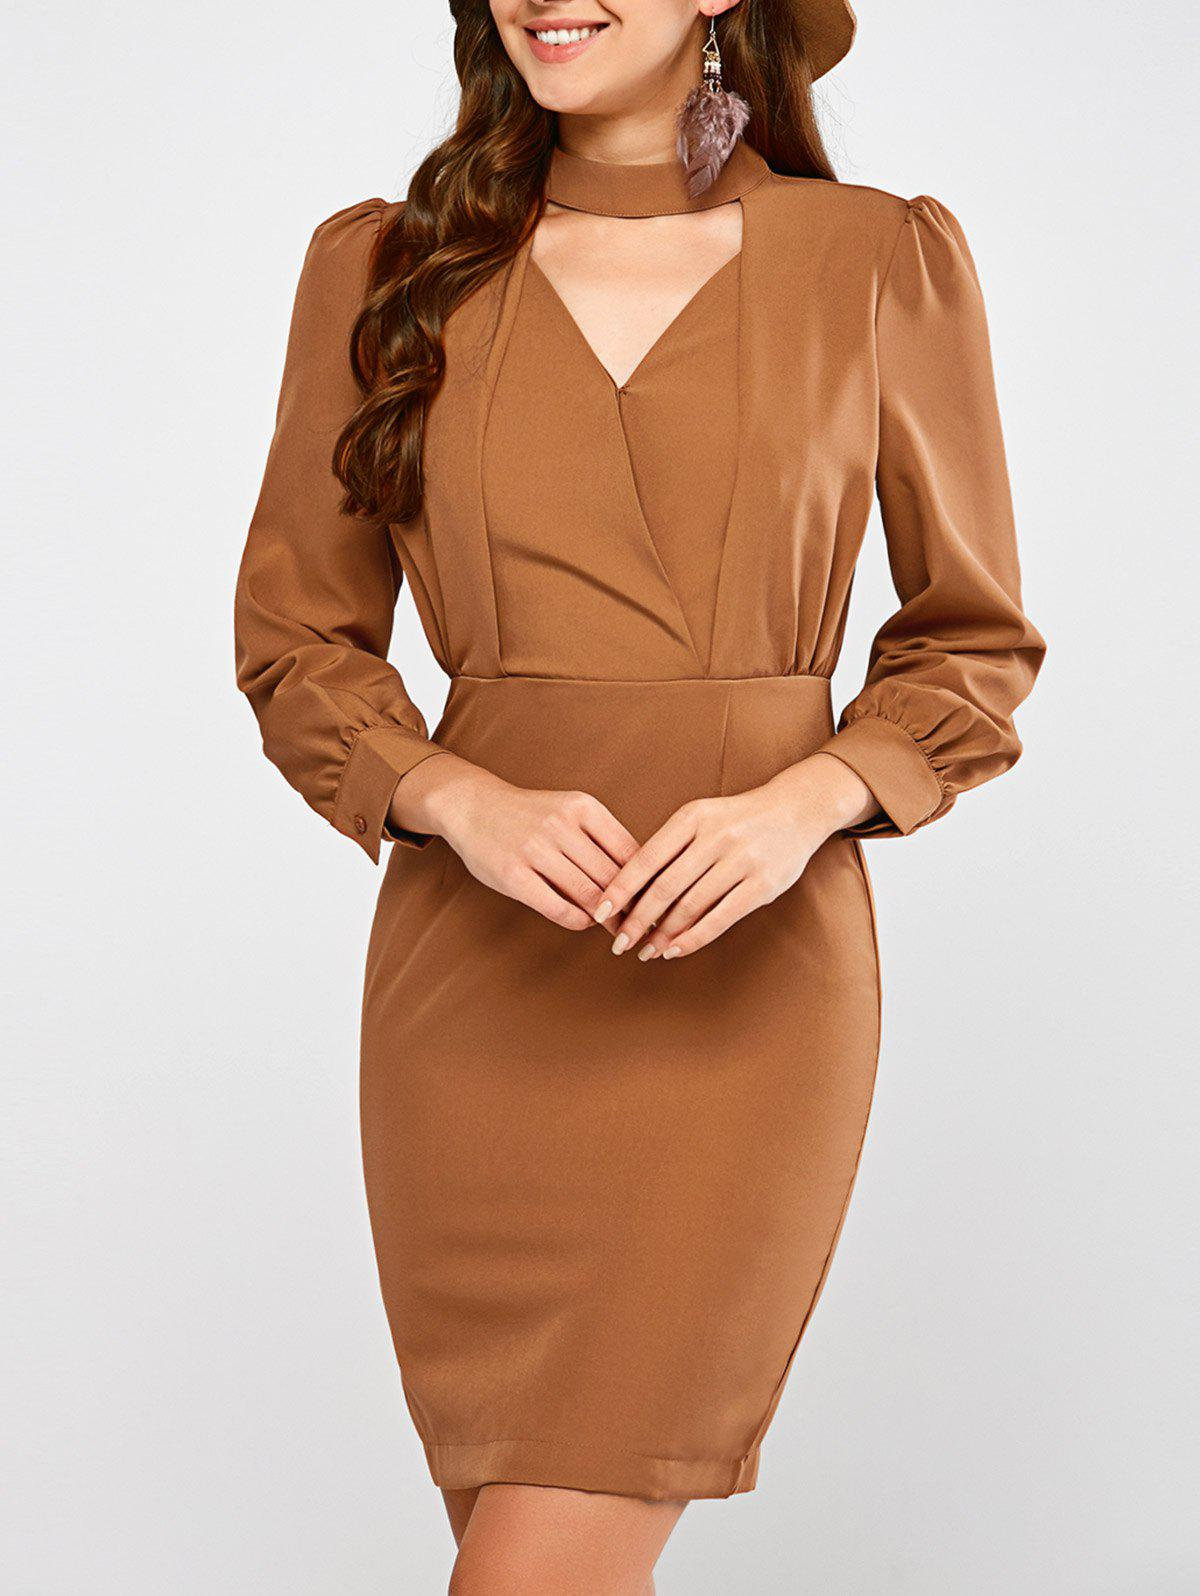 Choker Neck Long Sleeve Tight Sheath Dress - LIGHT BROWN L